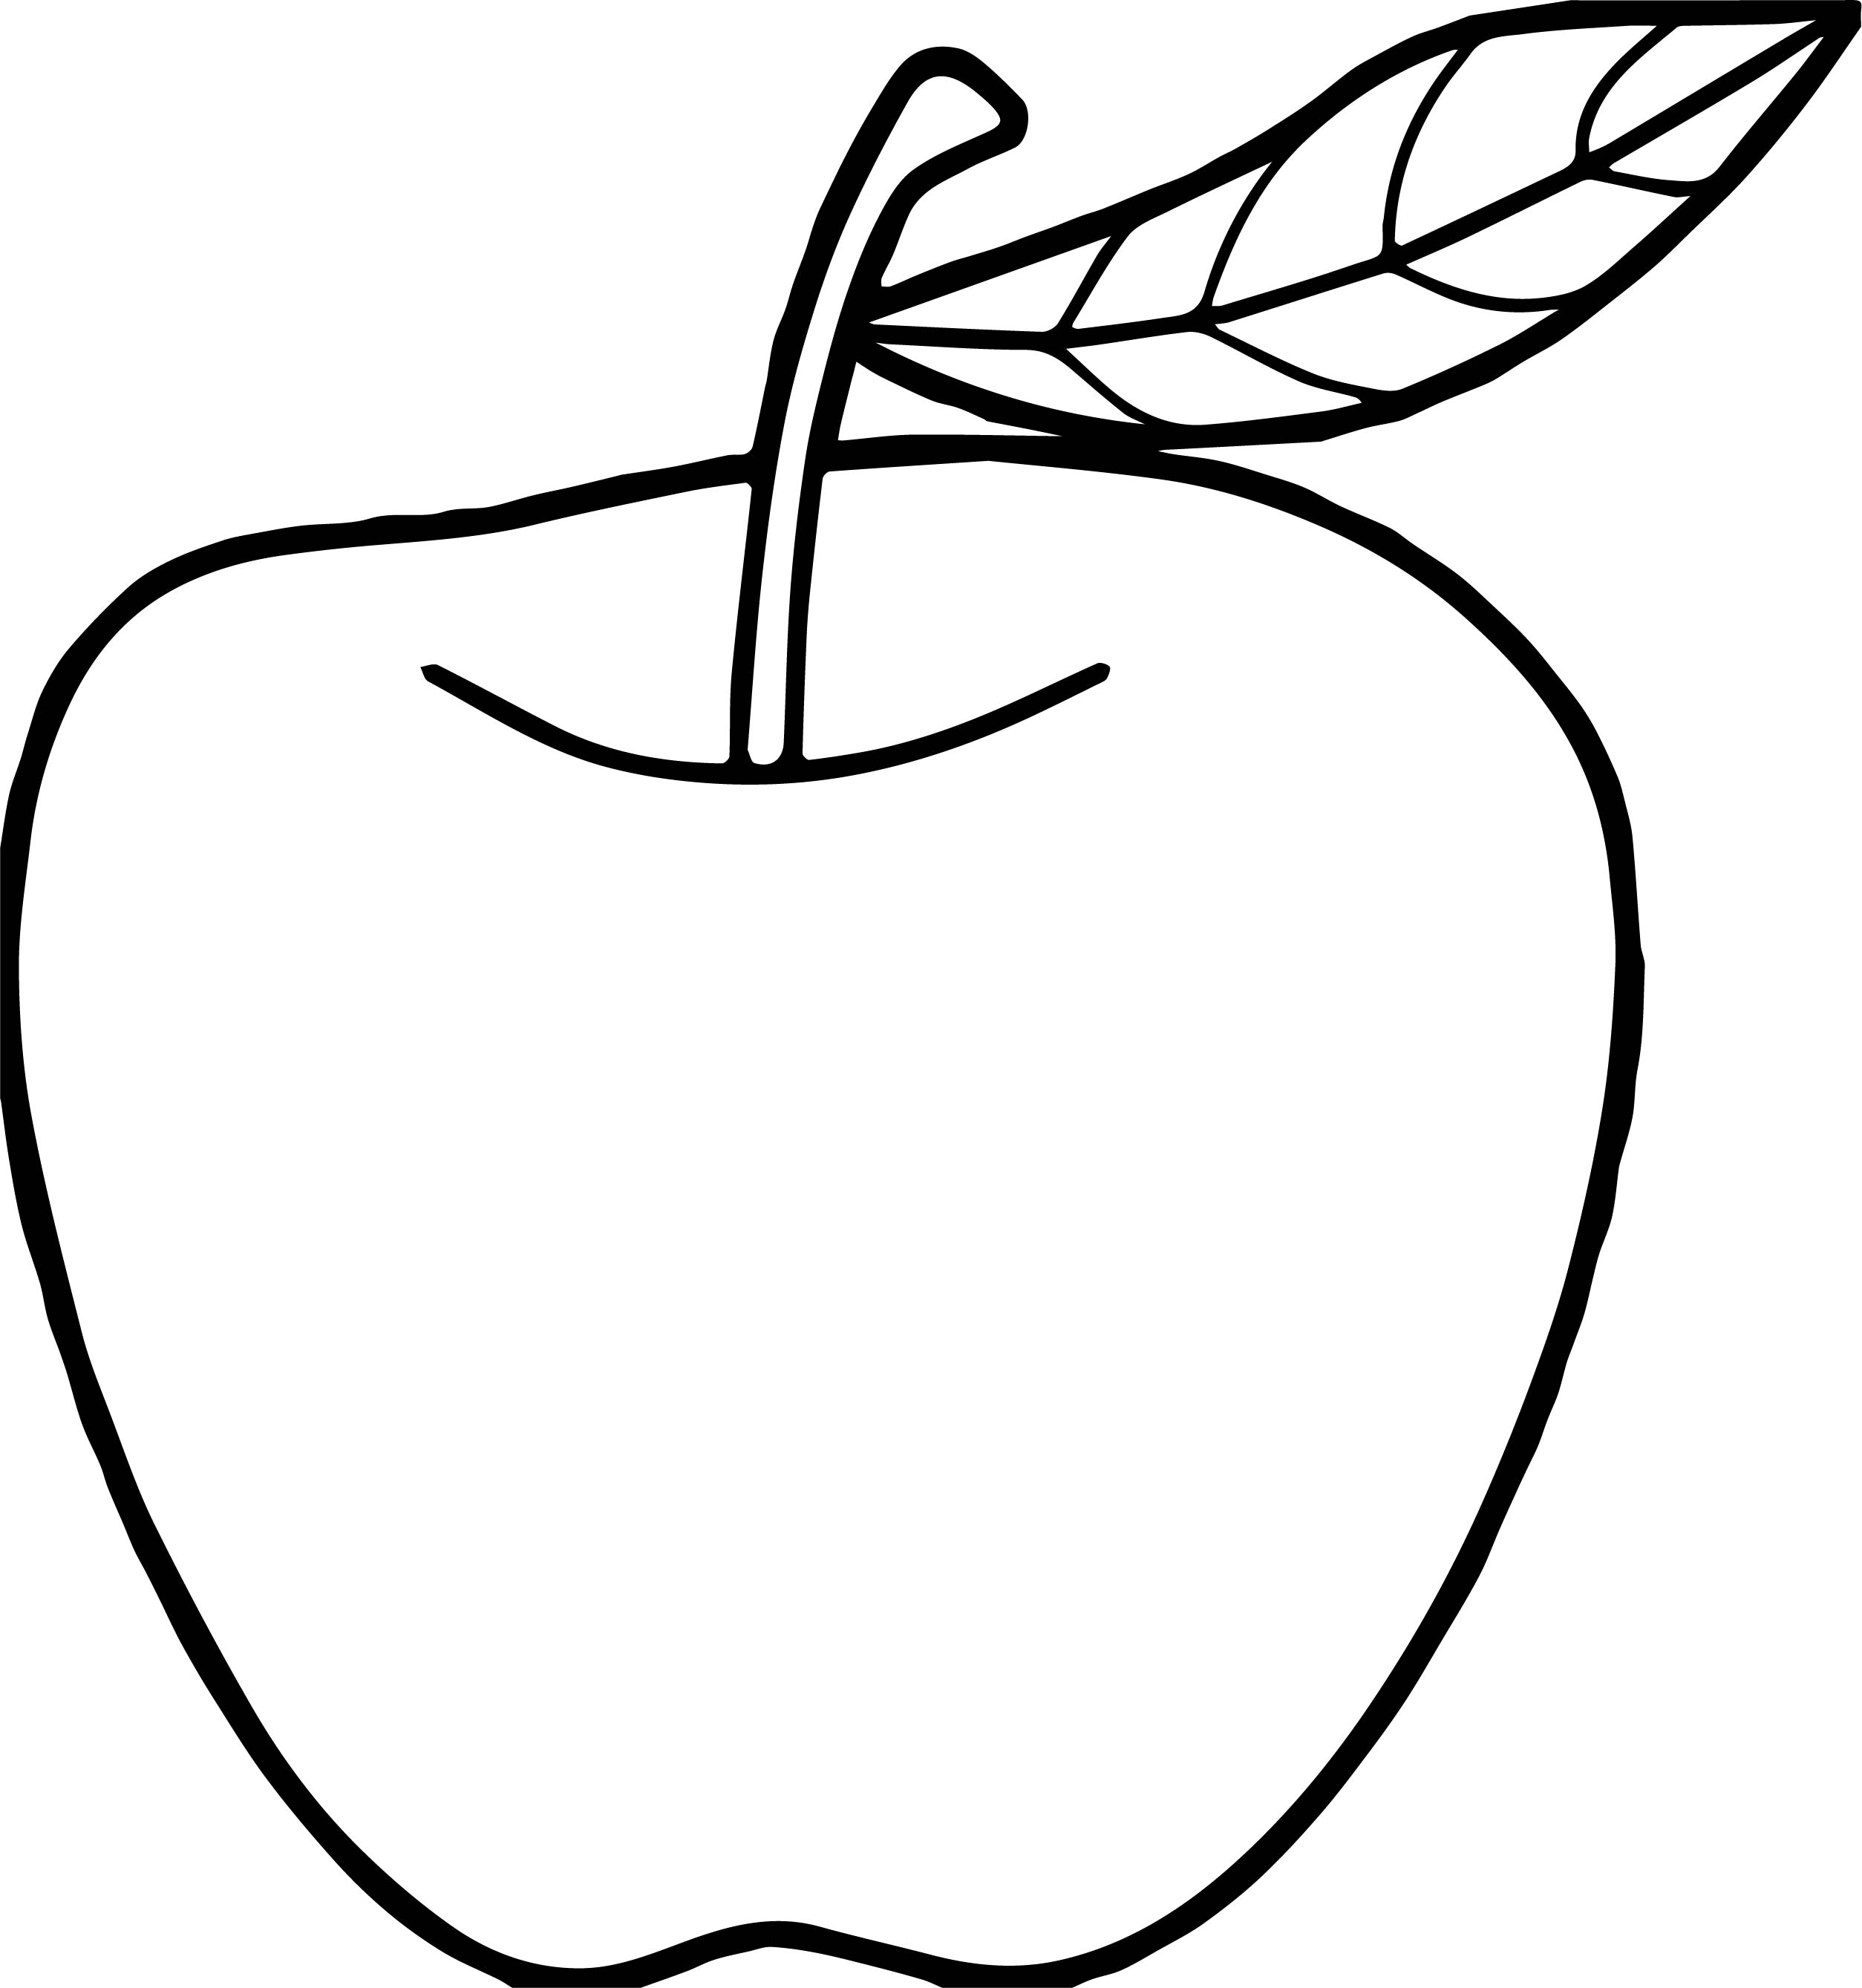 Apples Printable Templates & Coloring Pages